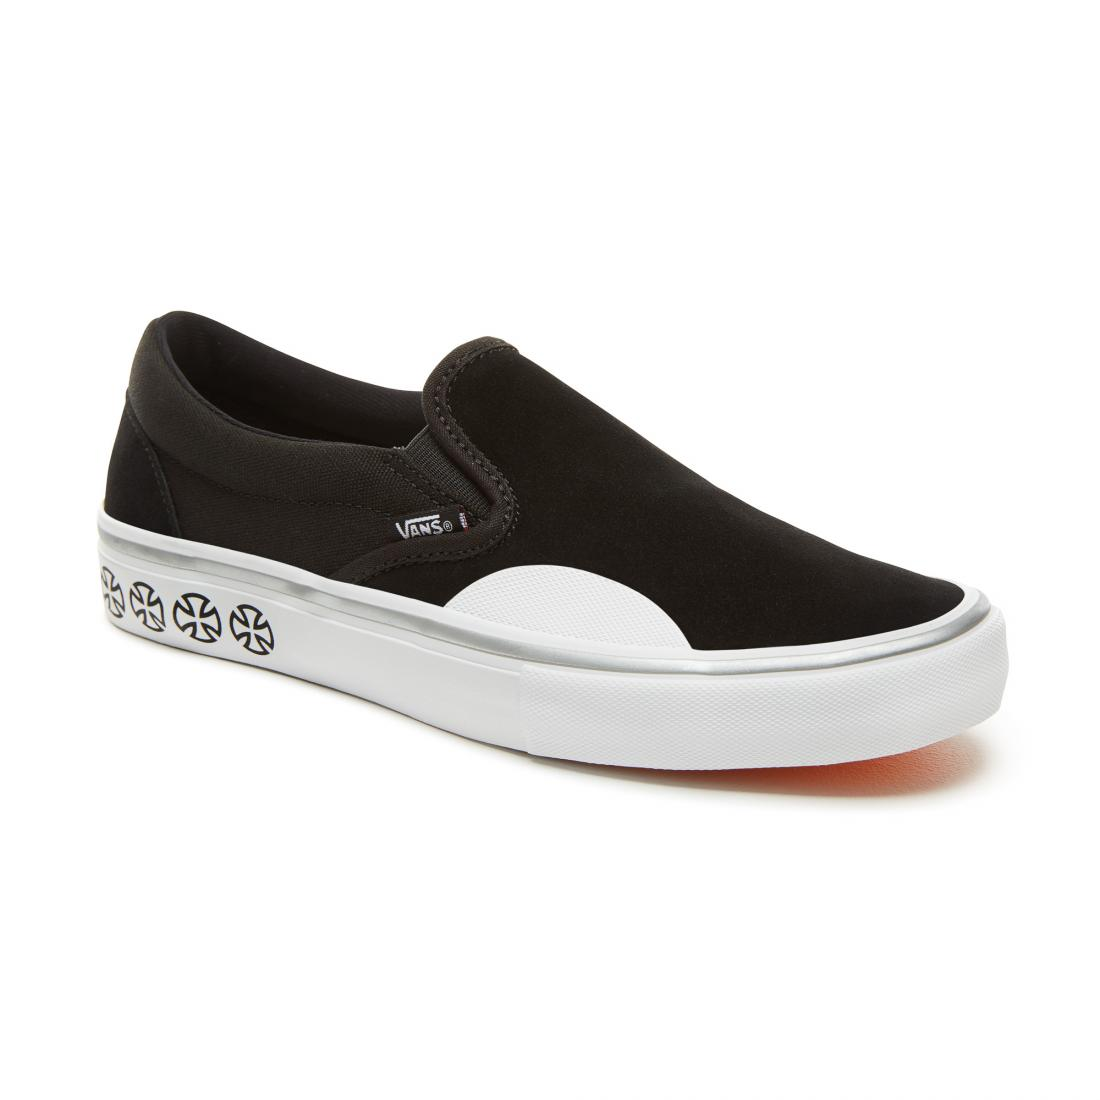 Полуботинки MN SLIP-ON PRO (INDEPENDENT) Черный